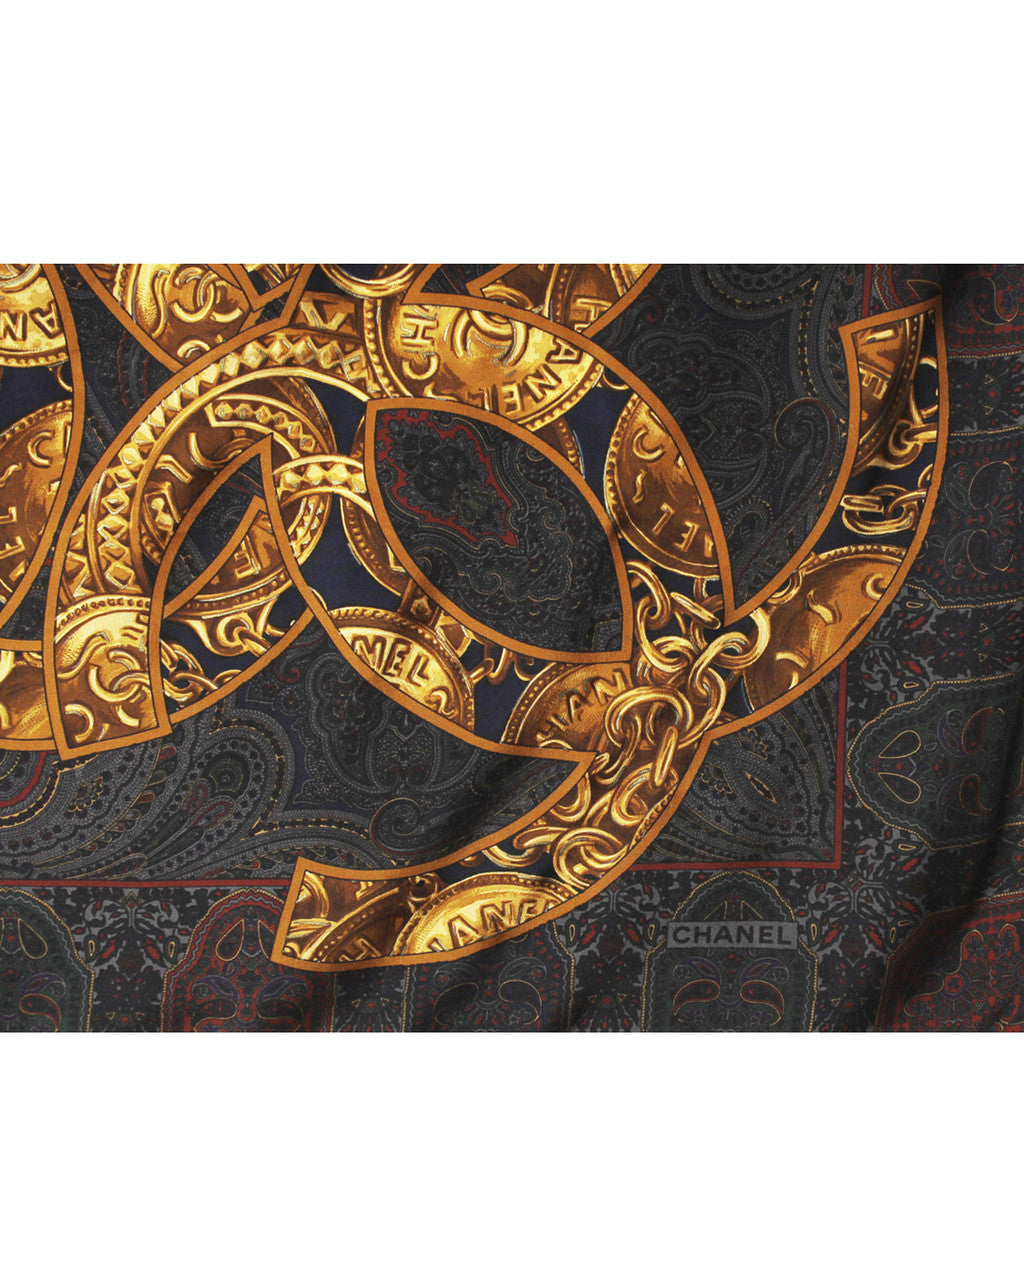 Chanel Coins & Chains Printed Silk Scarf